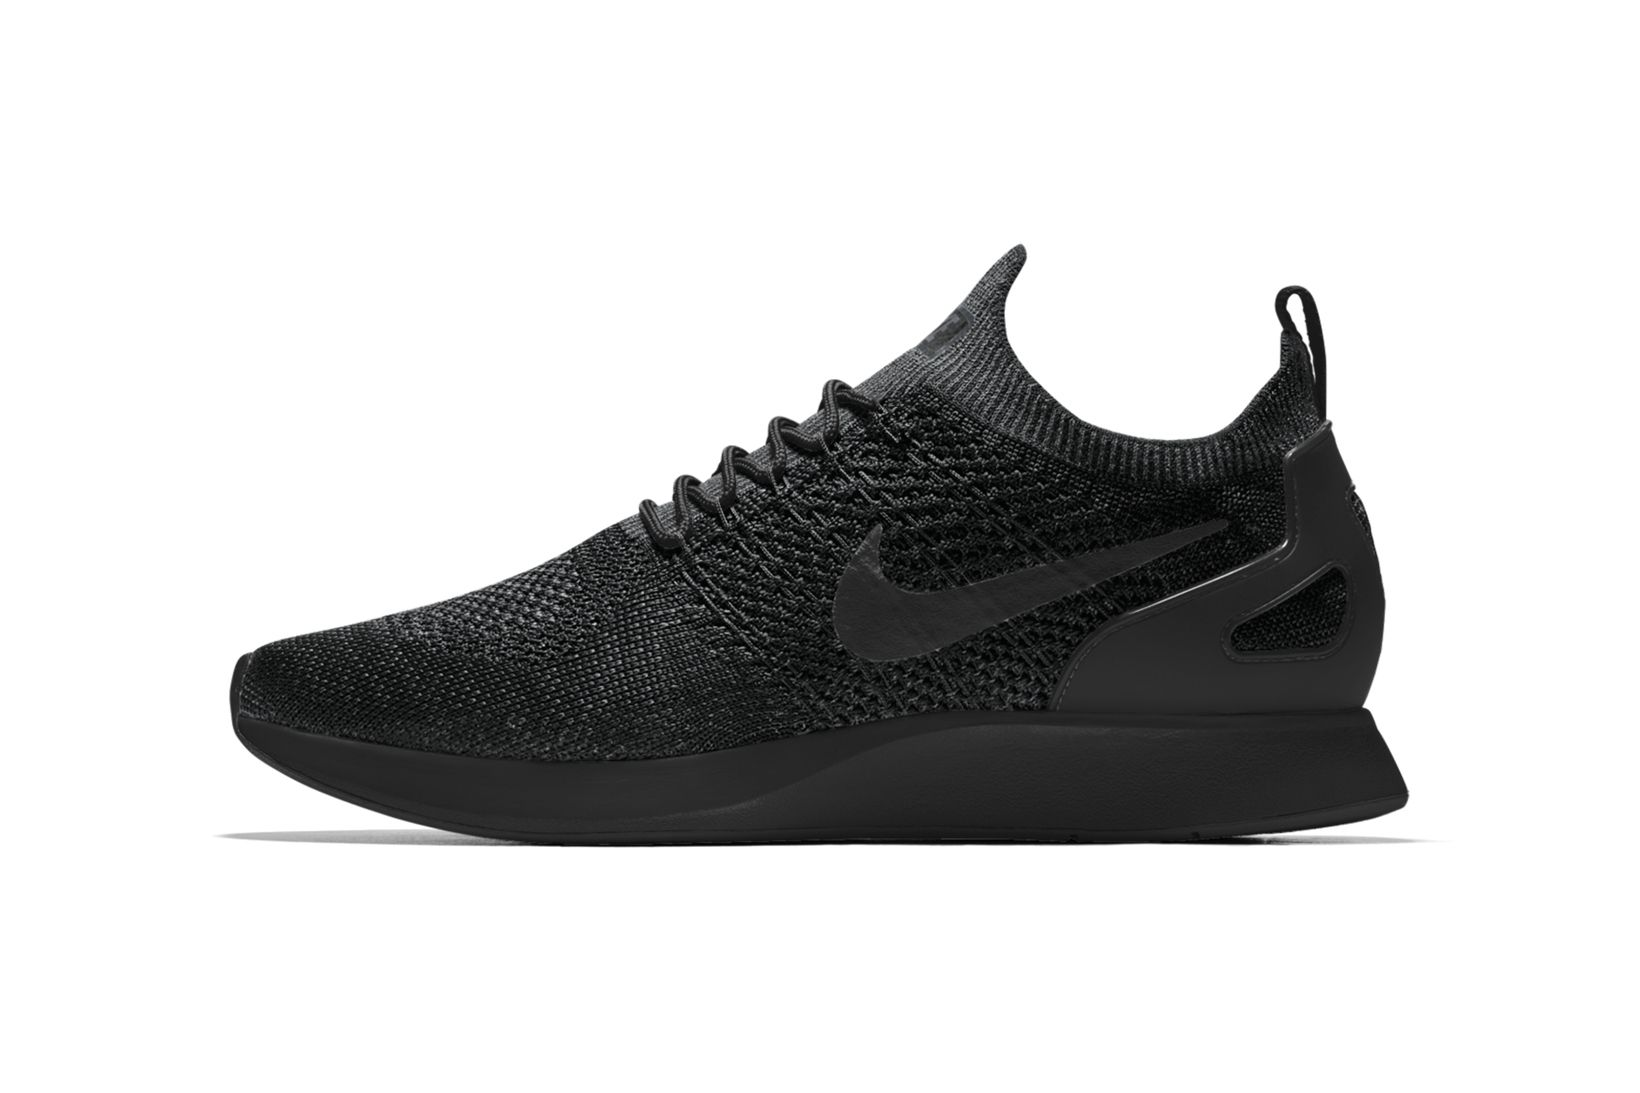 9f5bffb9ec517 Nike Epic React